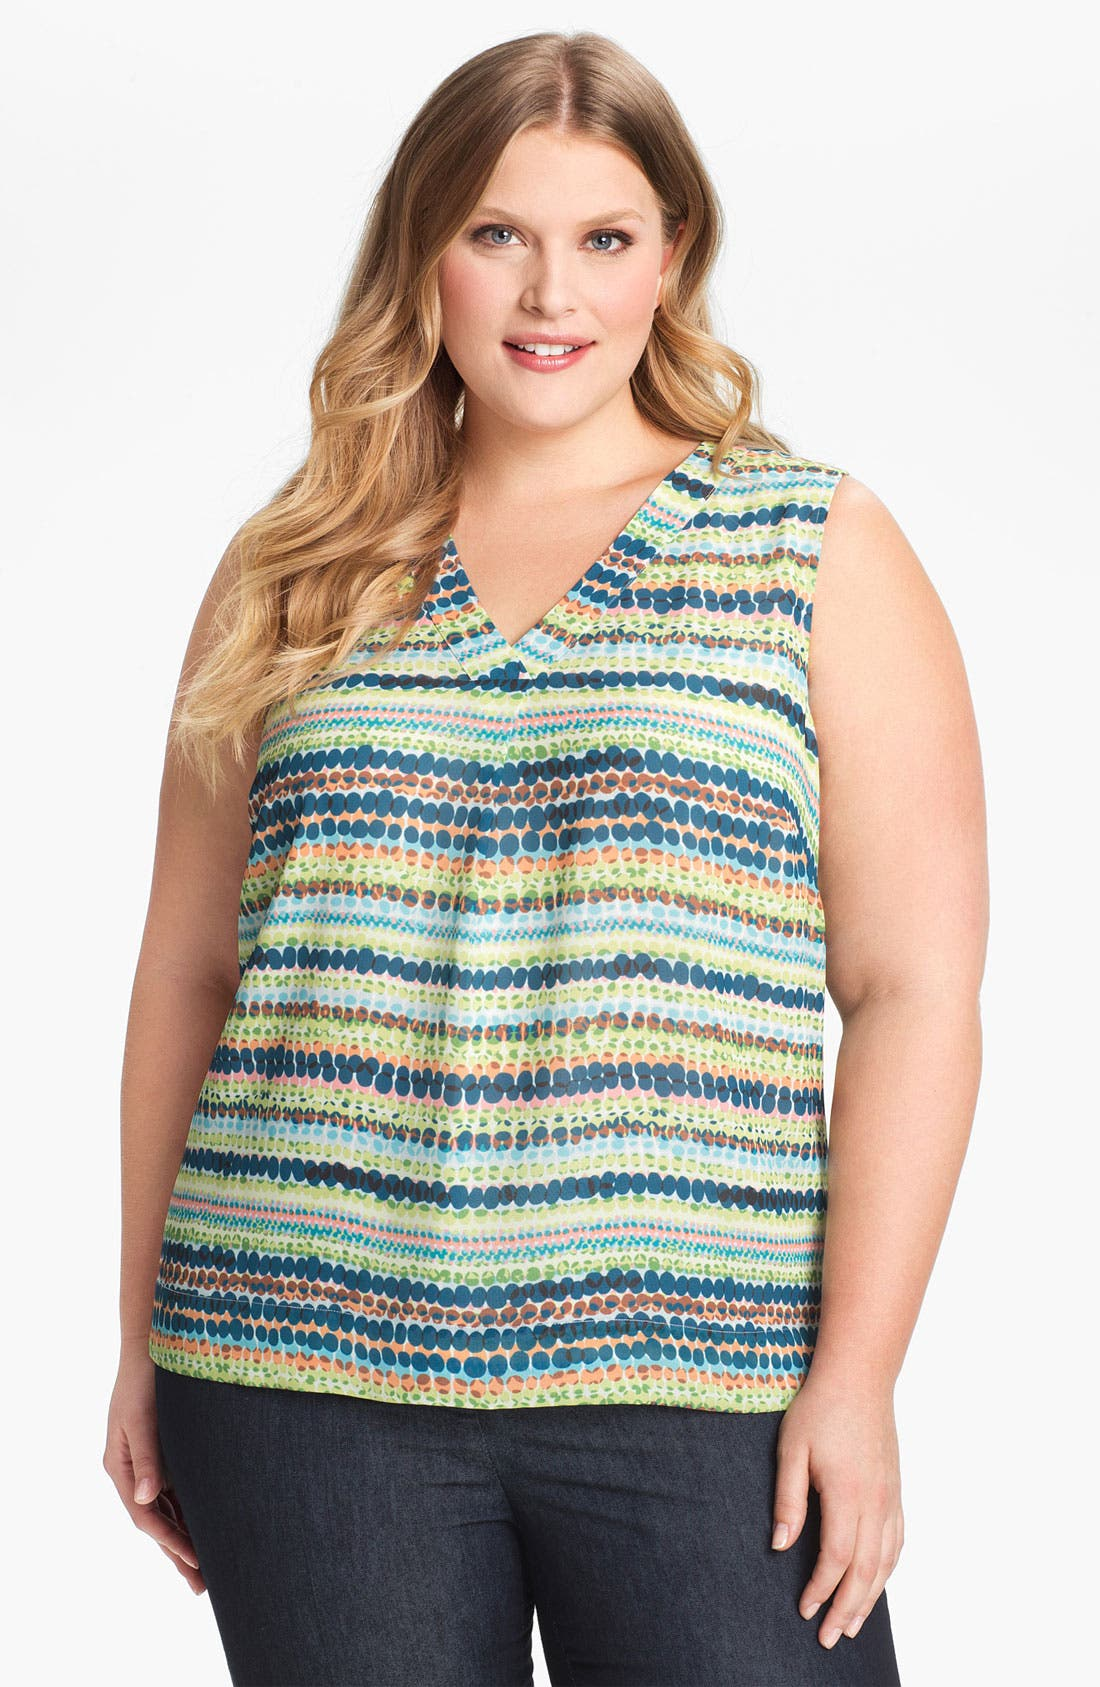 Alternate Image 1 Selected - Sejour Print Sleeveless Top (Plus Size)